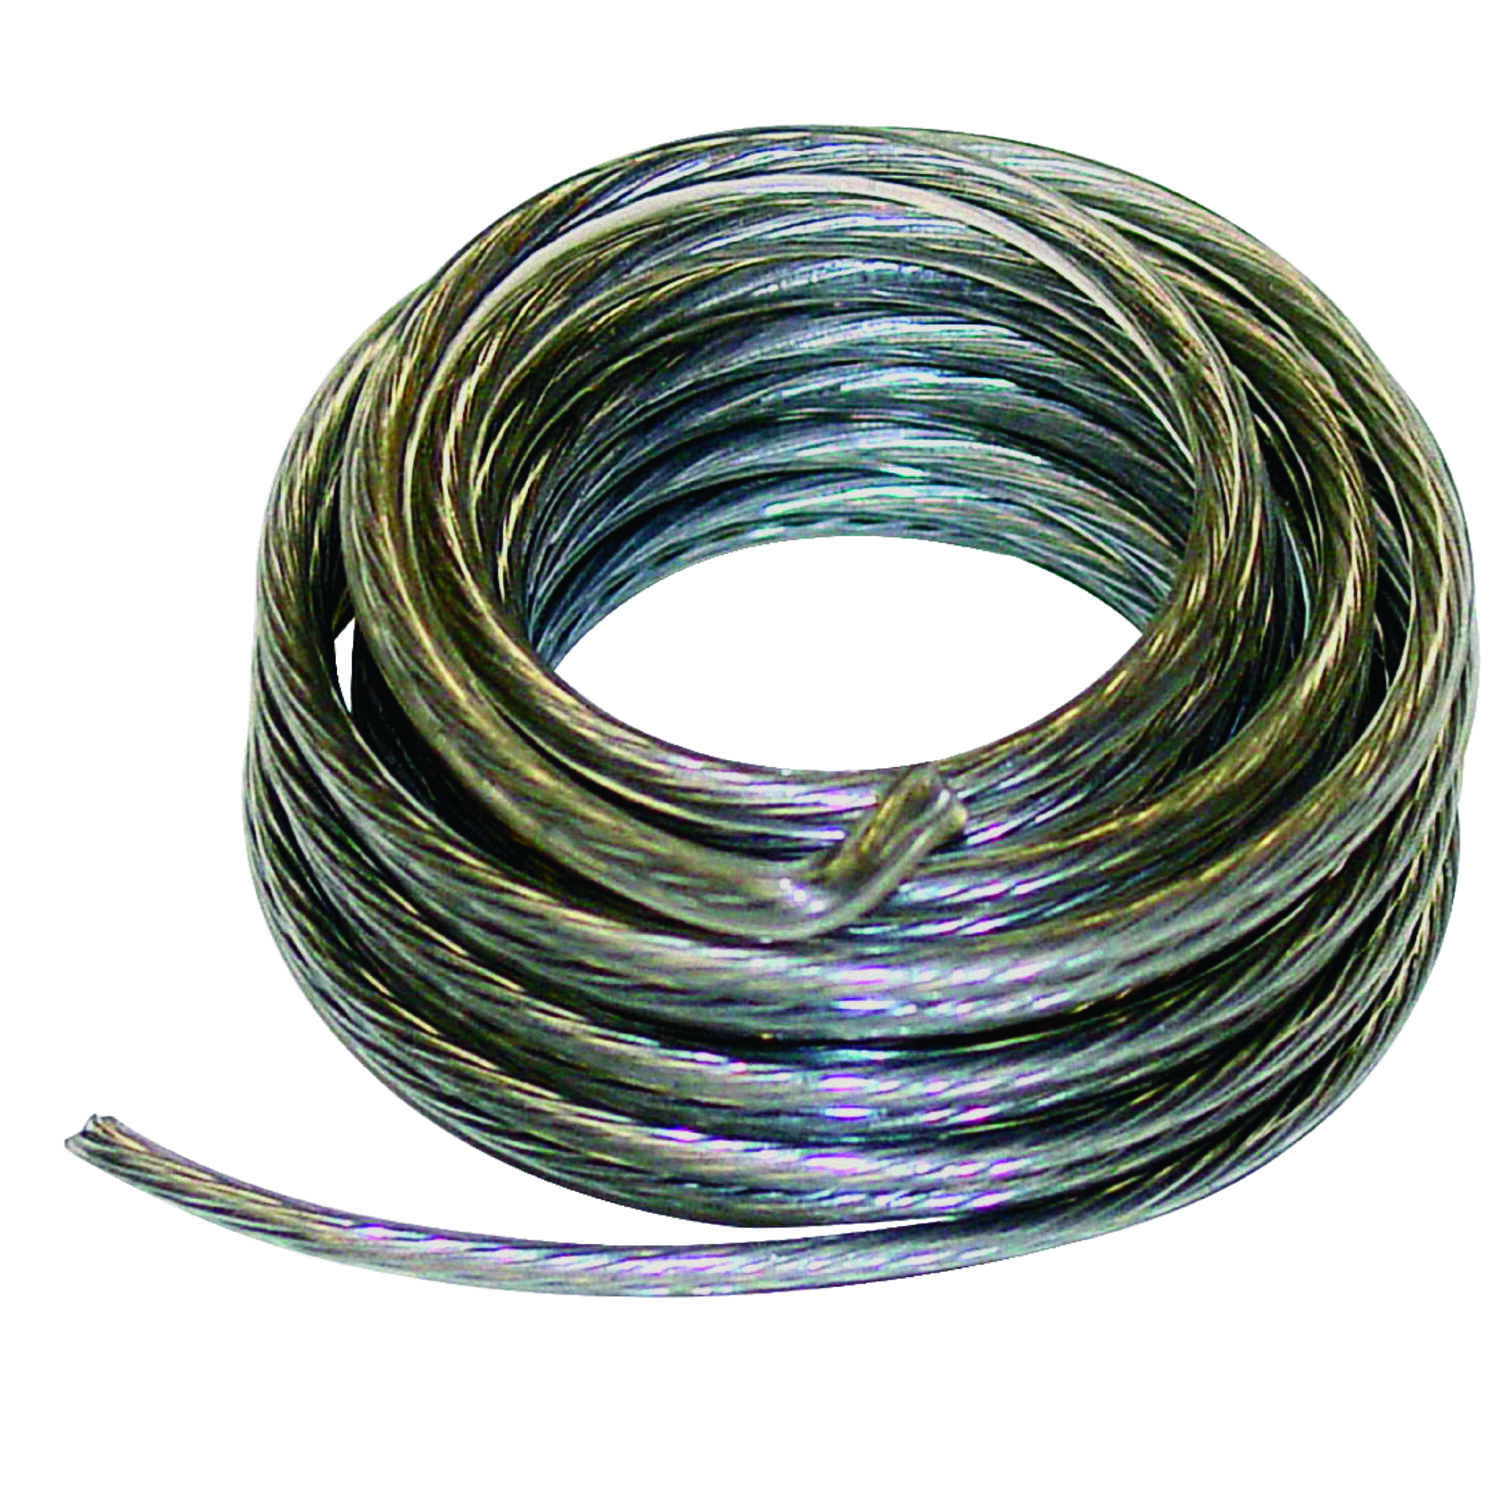 HILLMAN  OOK  Plastic Coated  Picture Wire  50 lb. 1 pk Stainless Steel